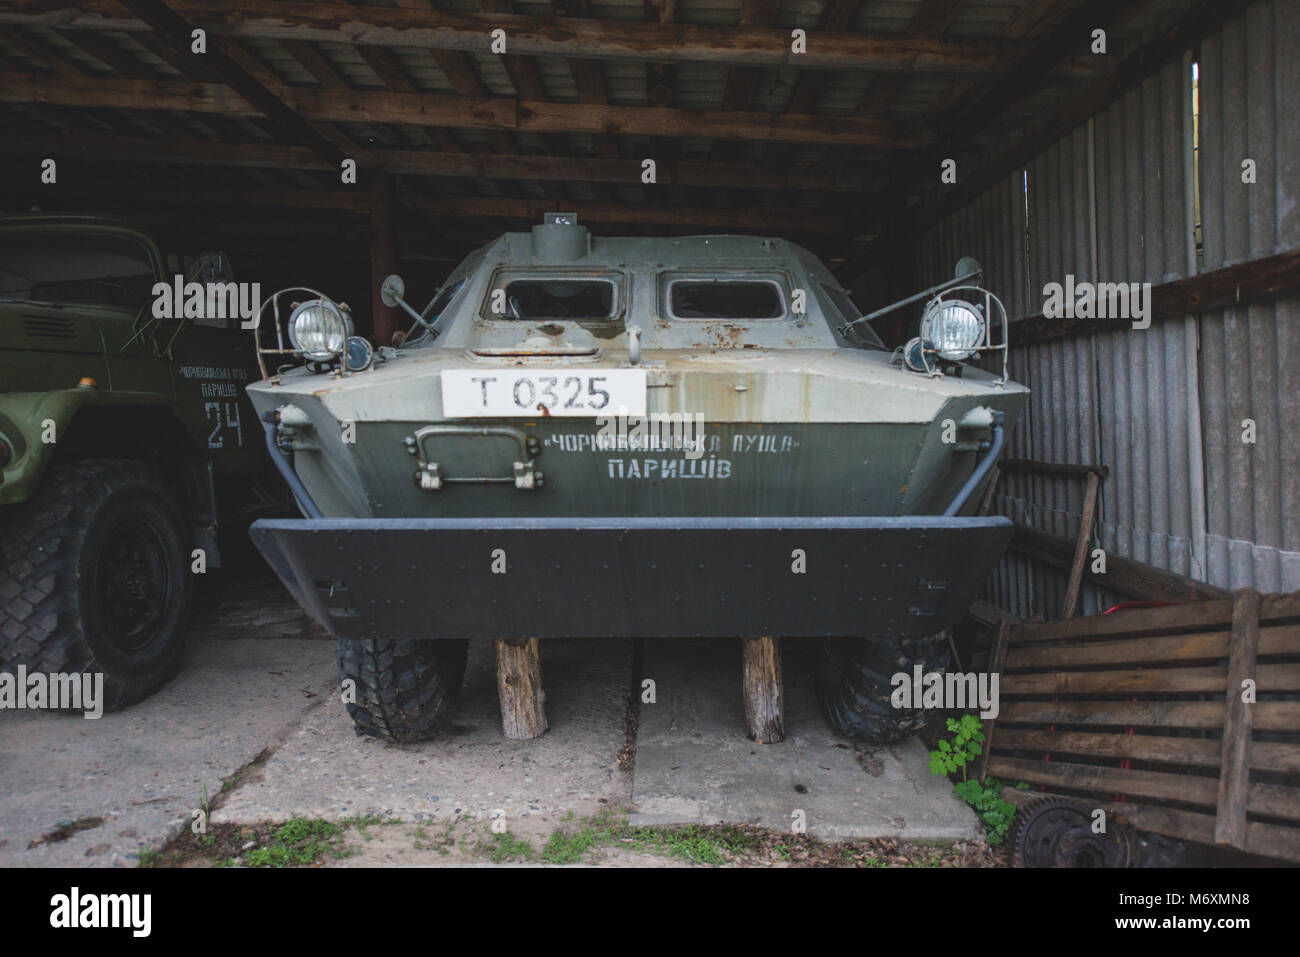 Ukraine, Chernobyl: Abandoned vehicles user for the decontamination of the Chernobyl nuclear power plant. Photo: - Stock Image